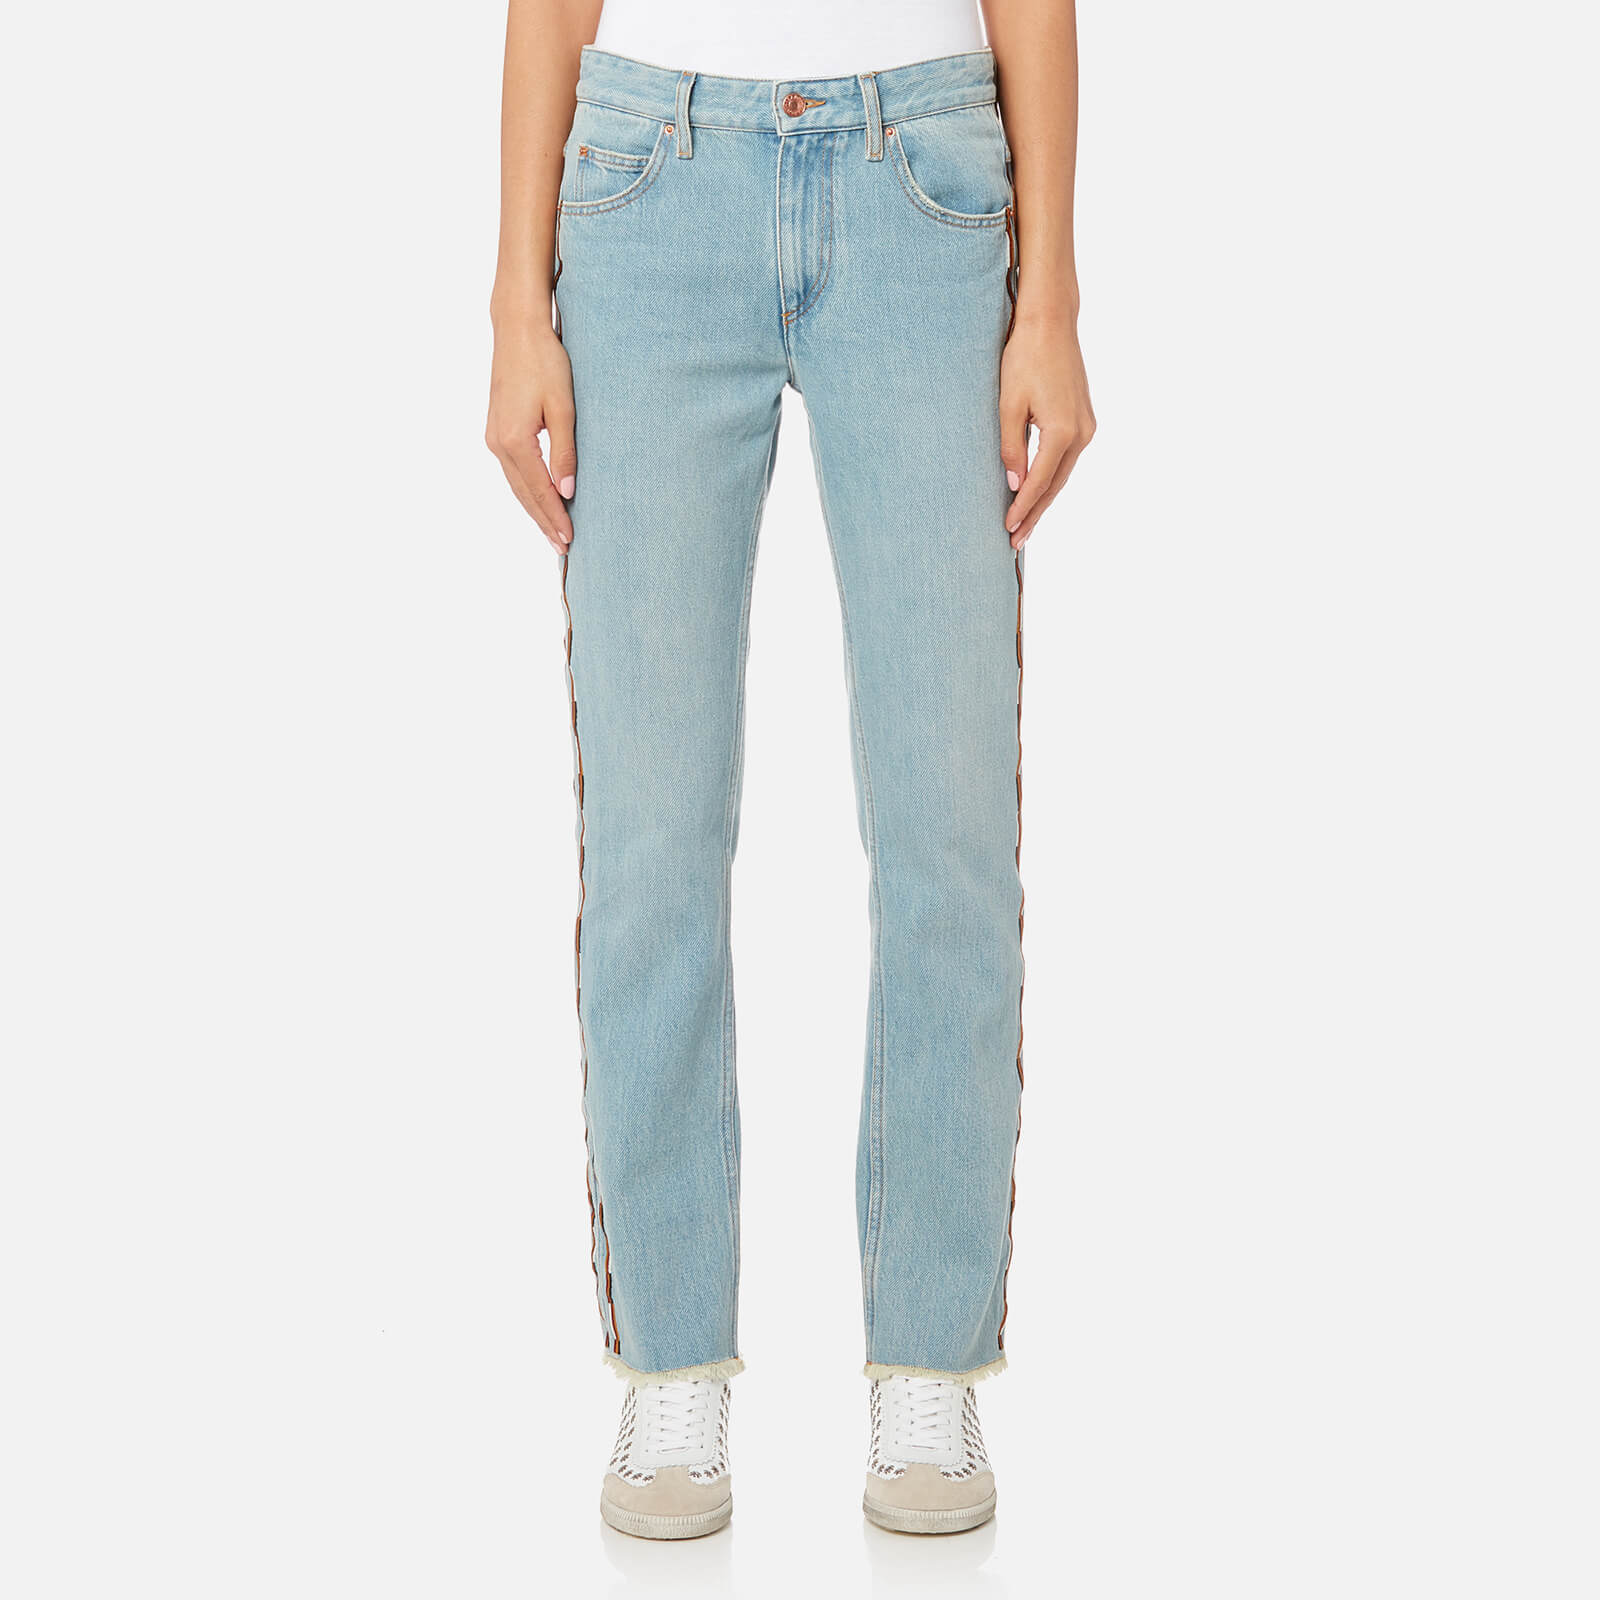 29754a8eae Isabel Marant Etoile Women's Colan Fancy Pants - Blue - Free UK Delivery  over £50